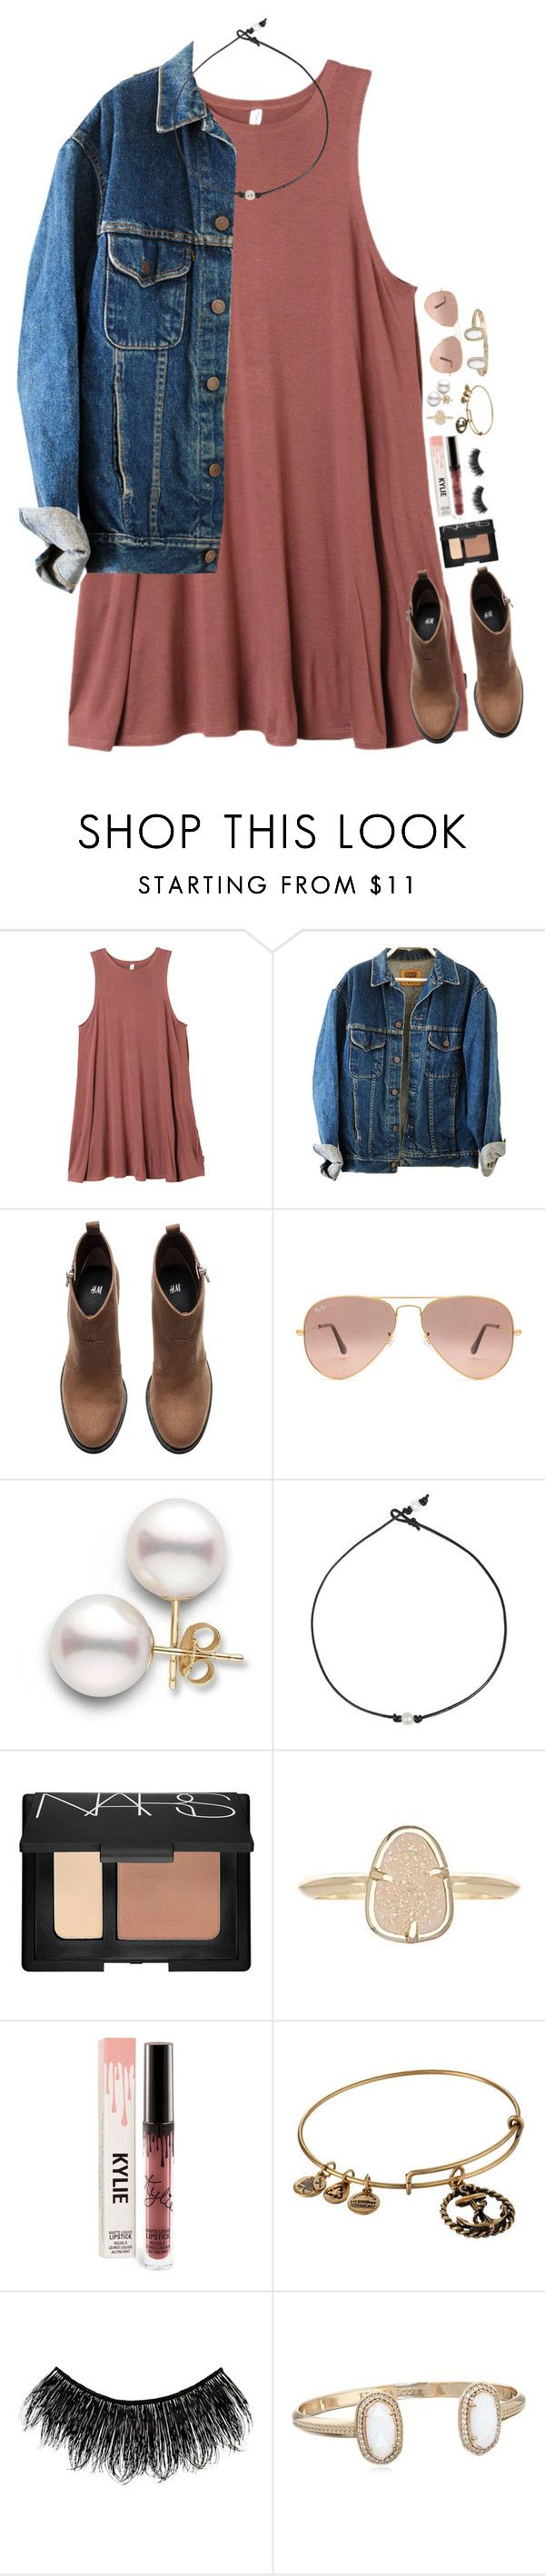 """""""Untitled #135"""" by tortor7 ❤ liked on Polyvore featuring RVCA, H&M, Ray-Ban, NARS Cosmetics, Kendra Scott, Alex and Ani and Illamasqua"""